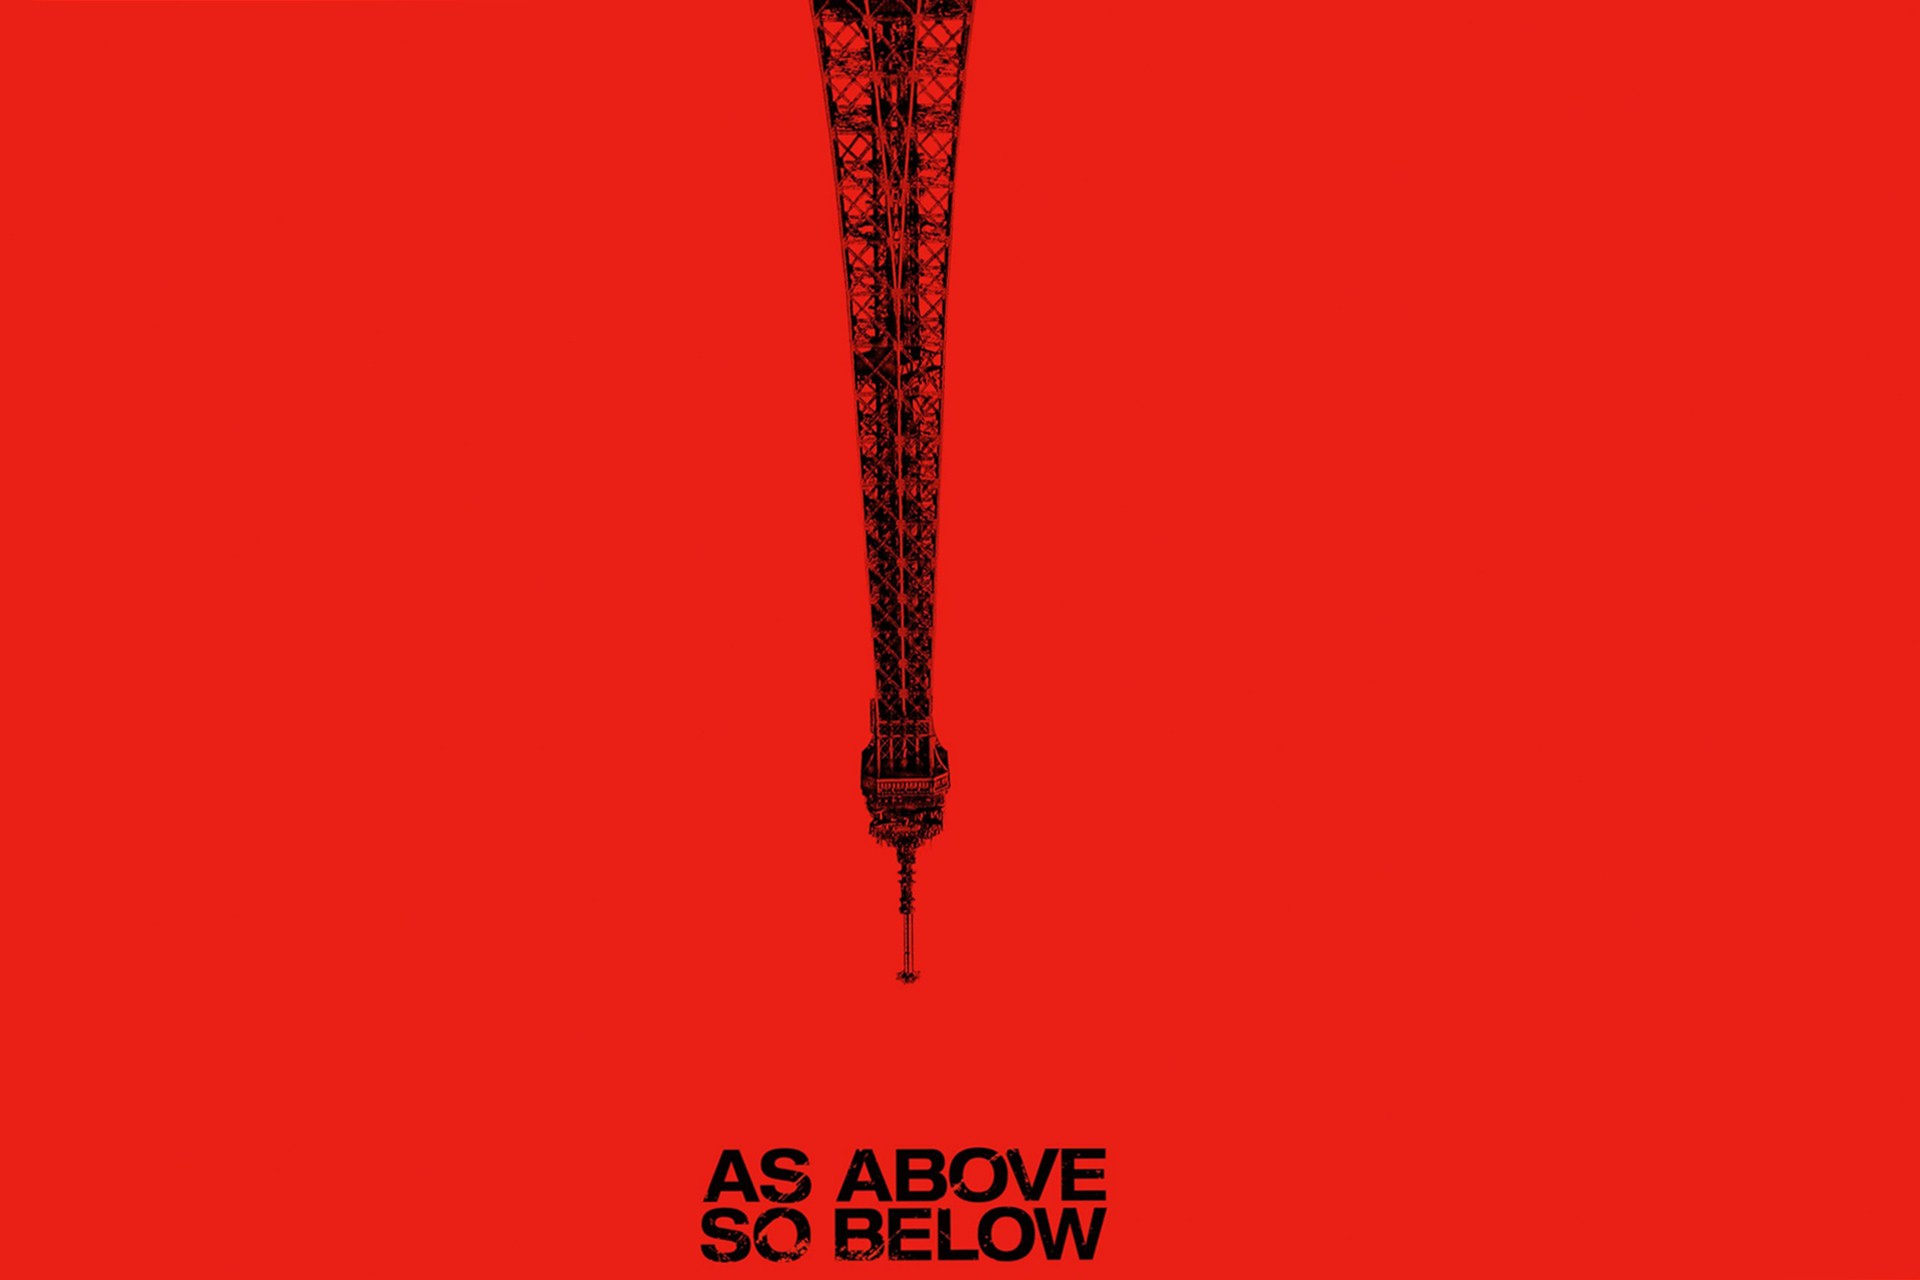 As Above So Below Hd Wallpaper Background Image 1920x1280